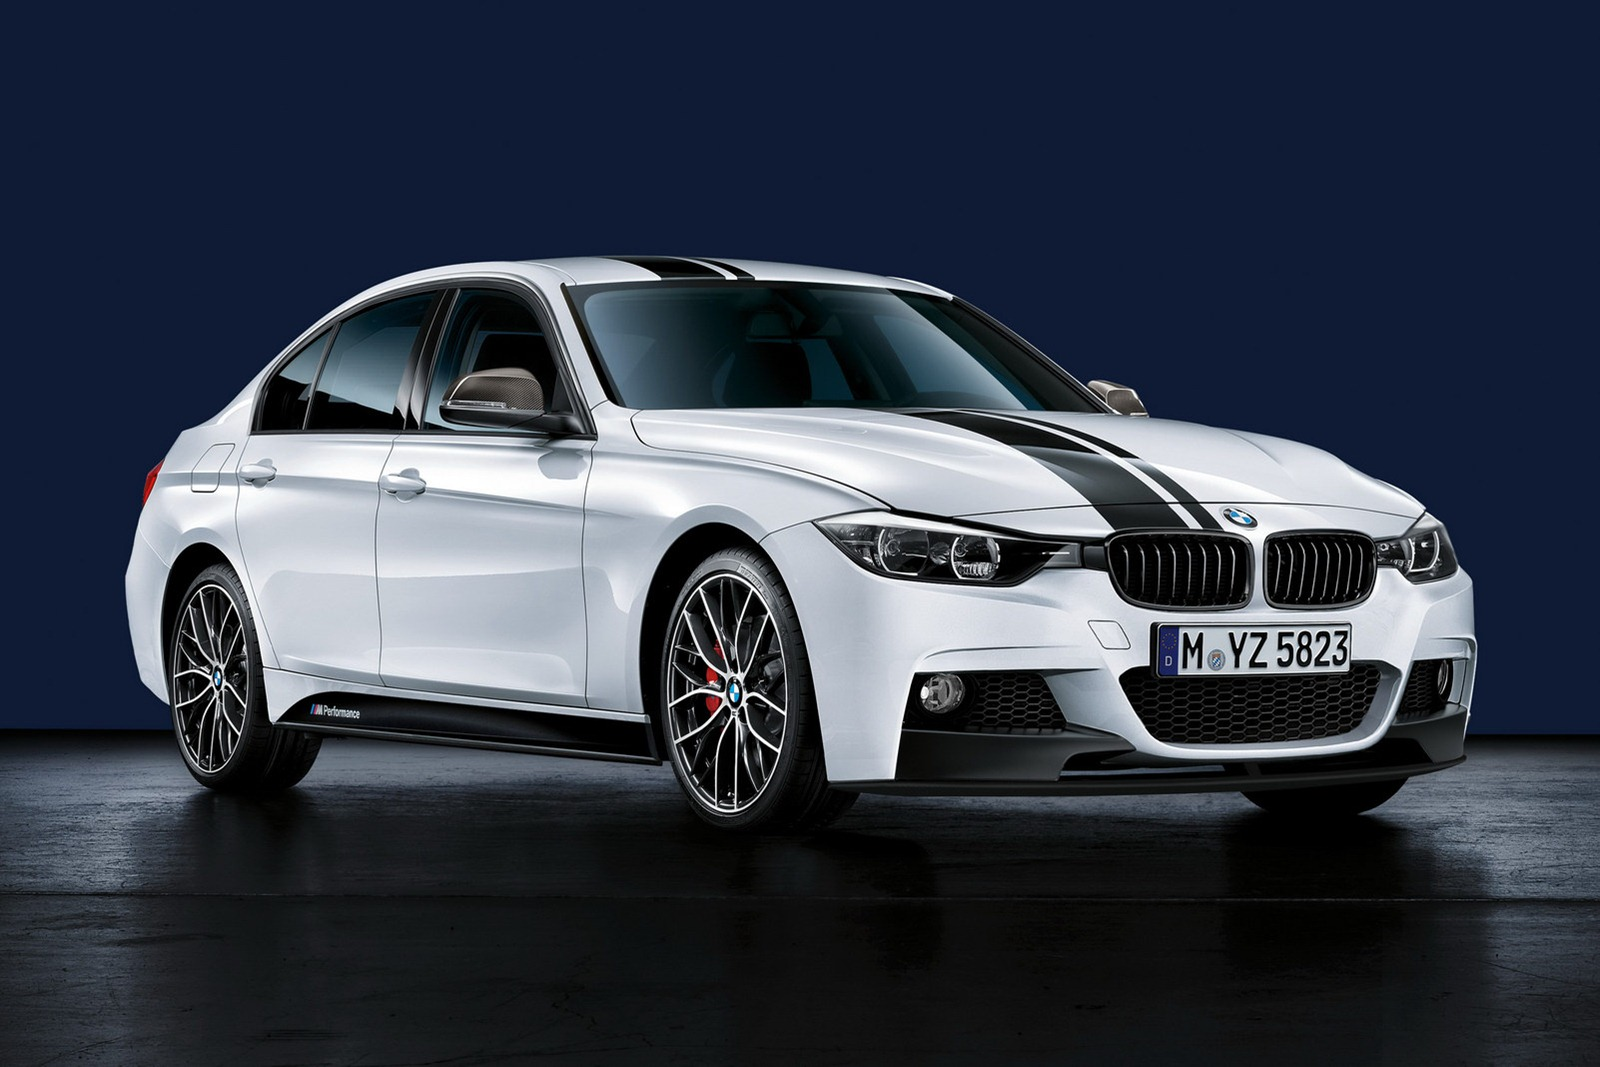 F30 BMW 335i M Performance